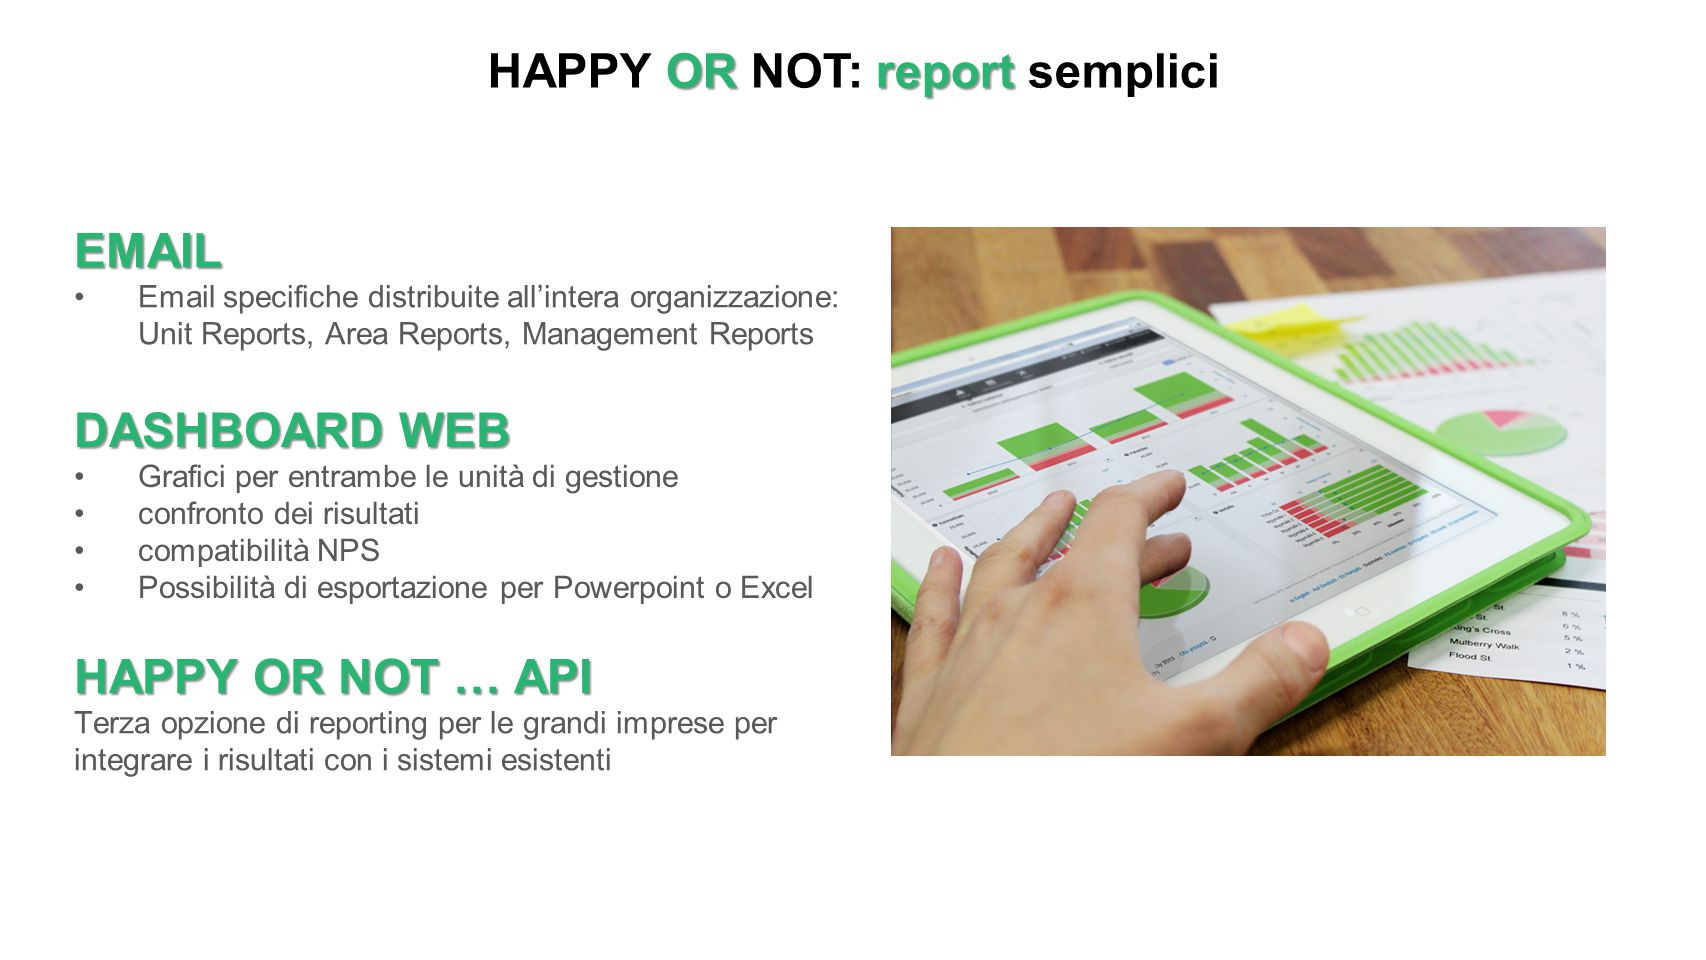 HAPPY OR NOT: report semplici